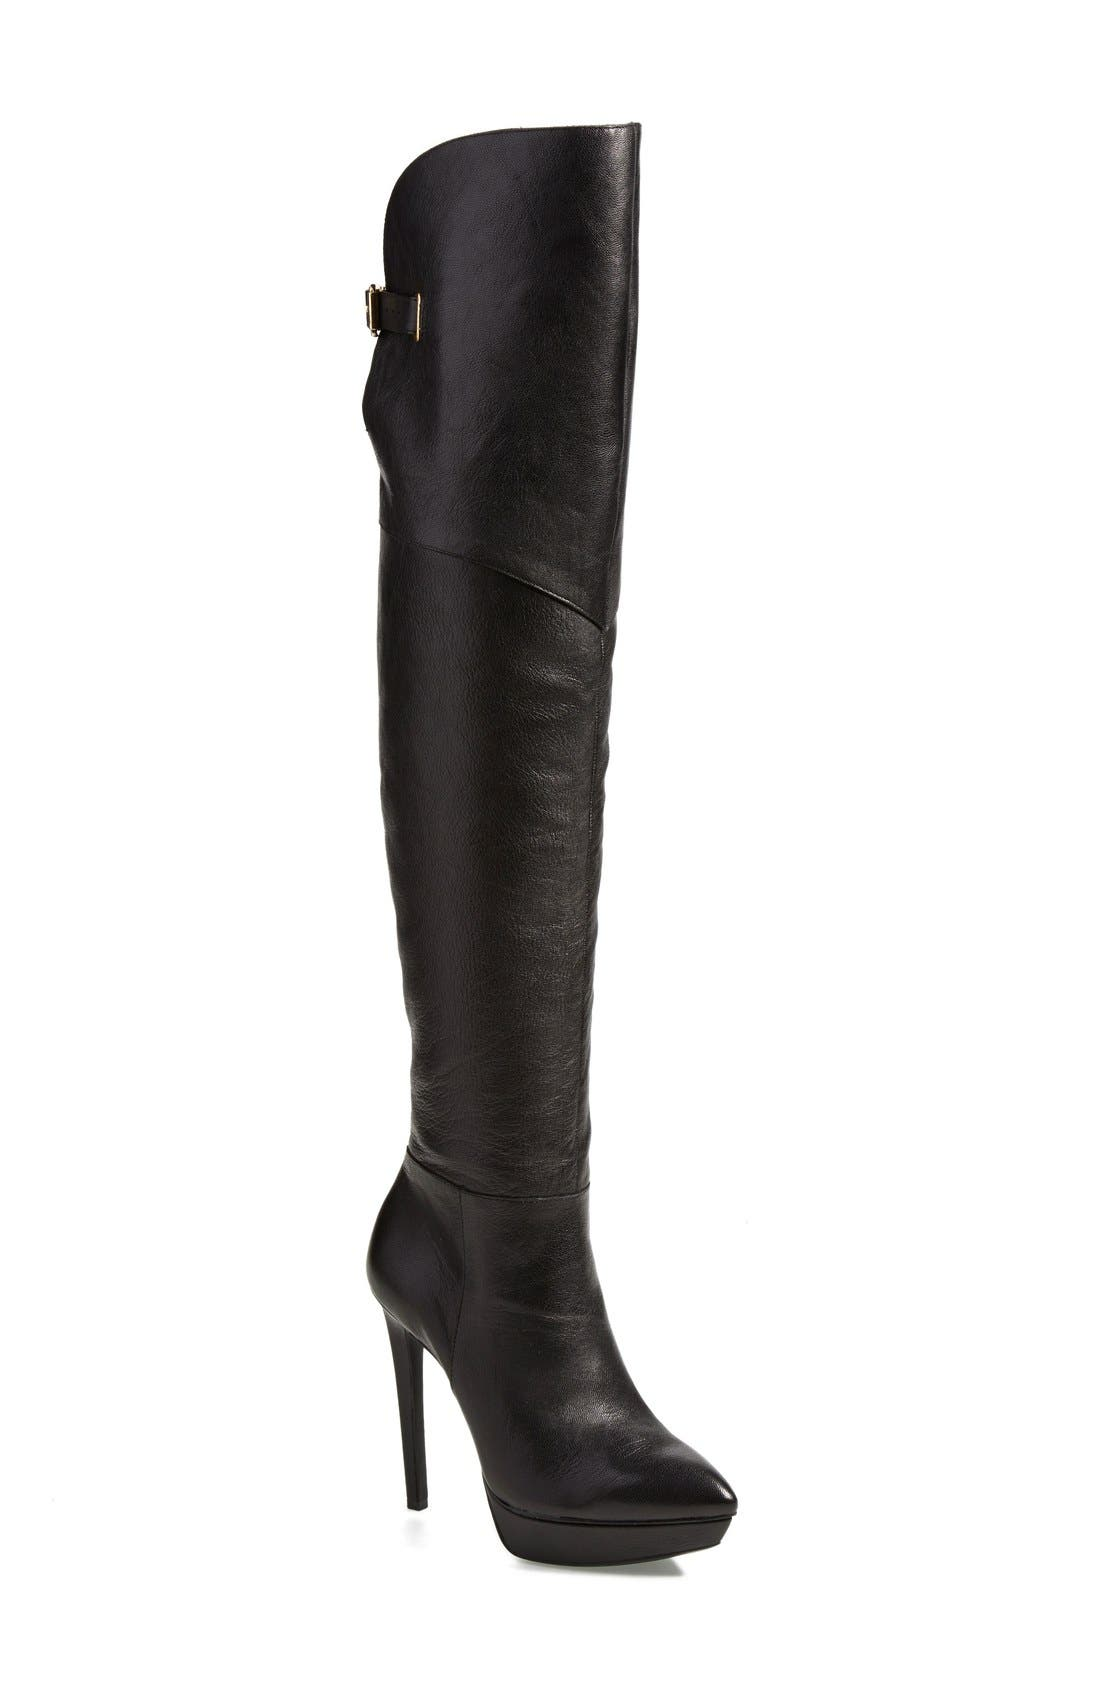 'Valentia' Over the Knee Platform Boot,                         Main,                         color, 001